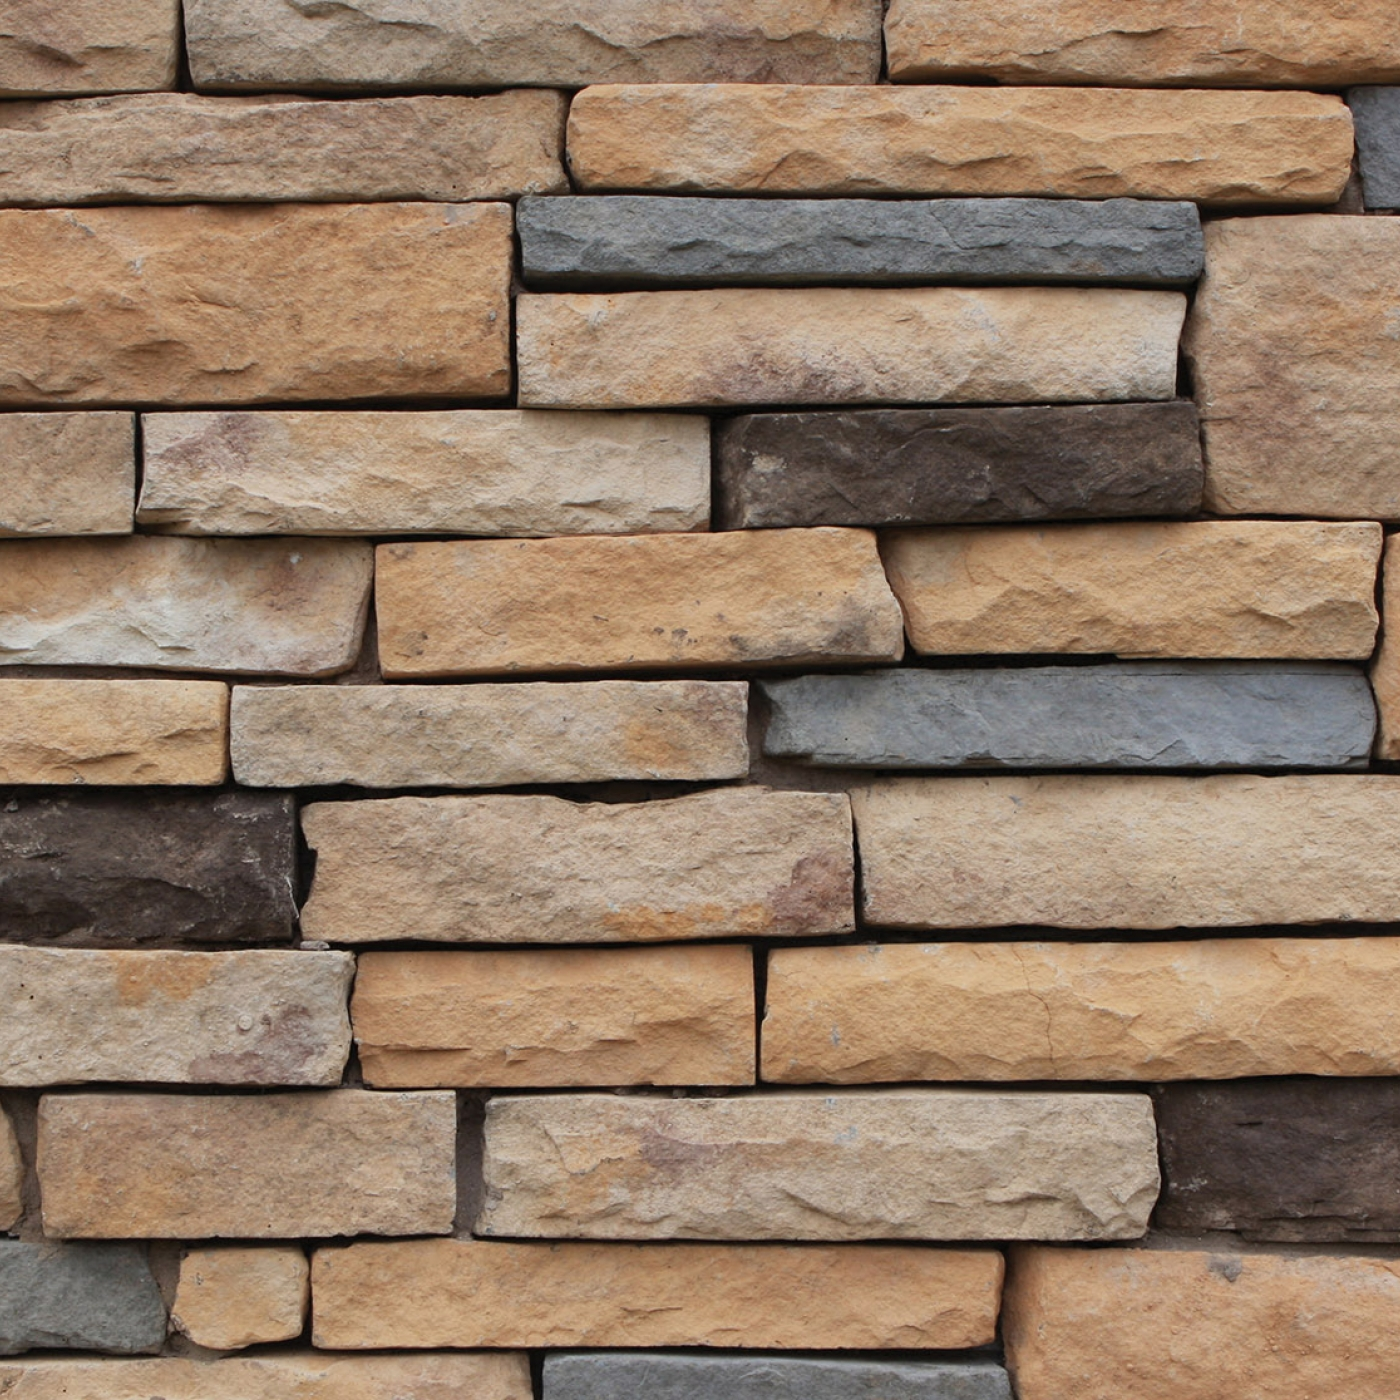 Sequoia Ledgestone Stone Veneer from Environmental StoneWorks